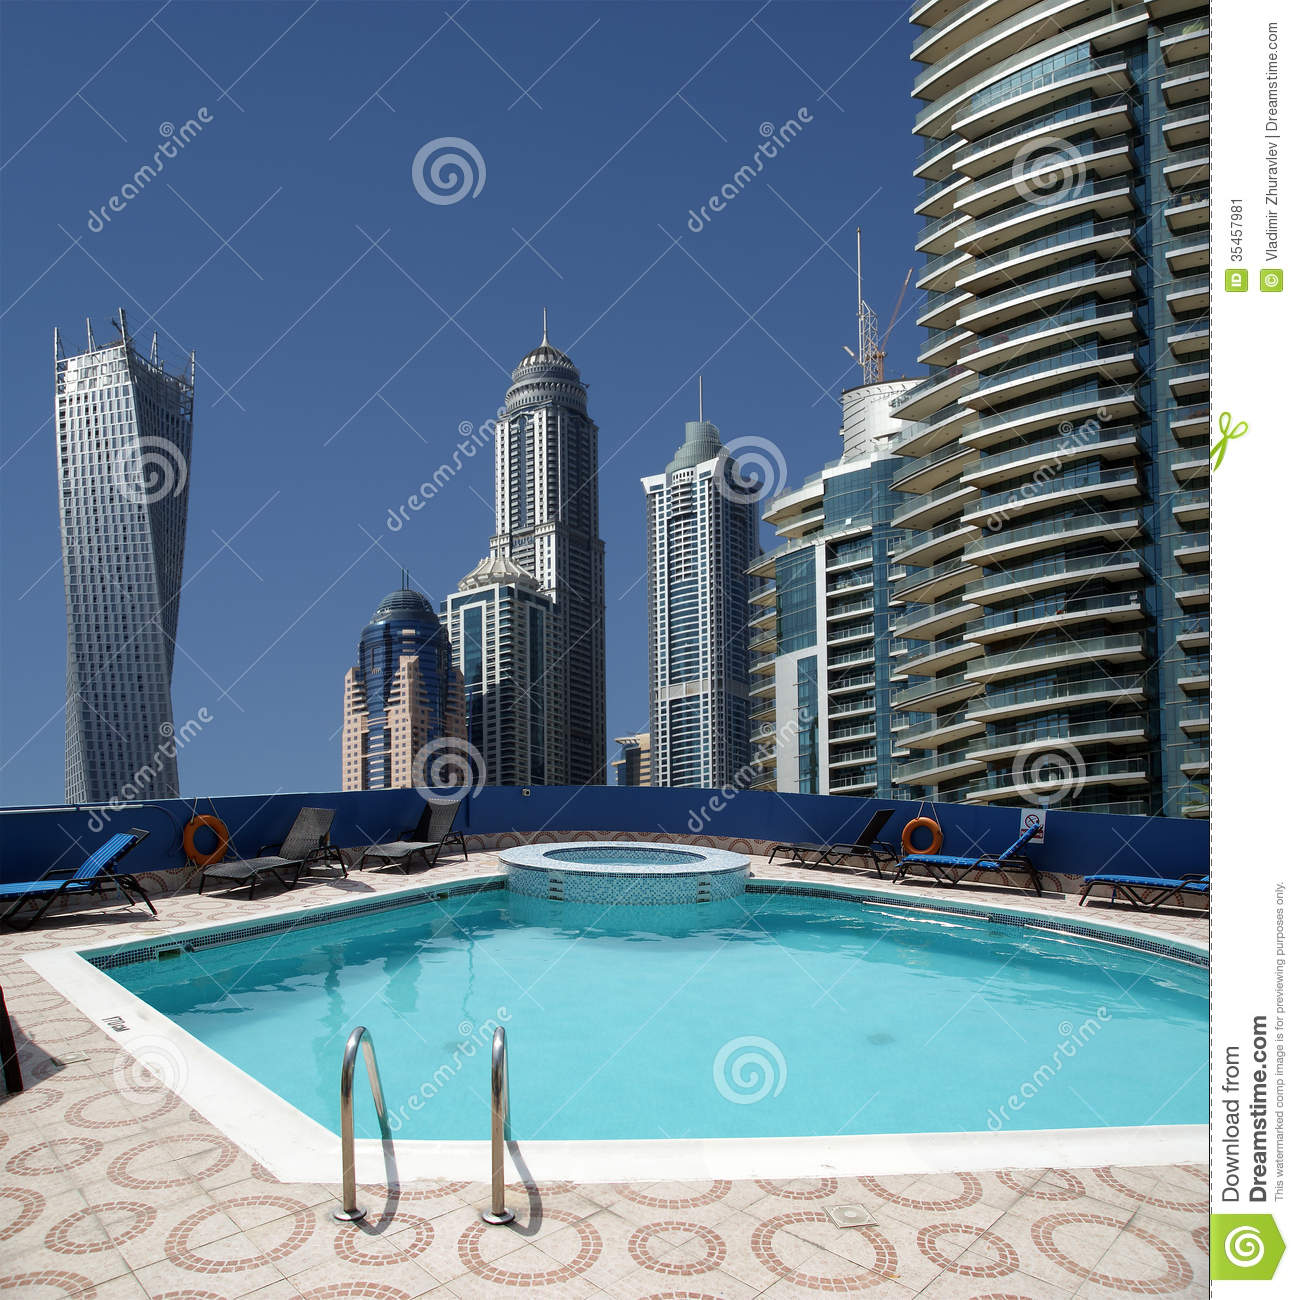 The Swimming Pool On The Hotel Roof Stock Image Image